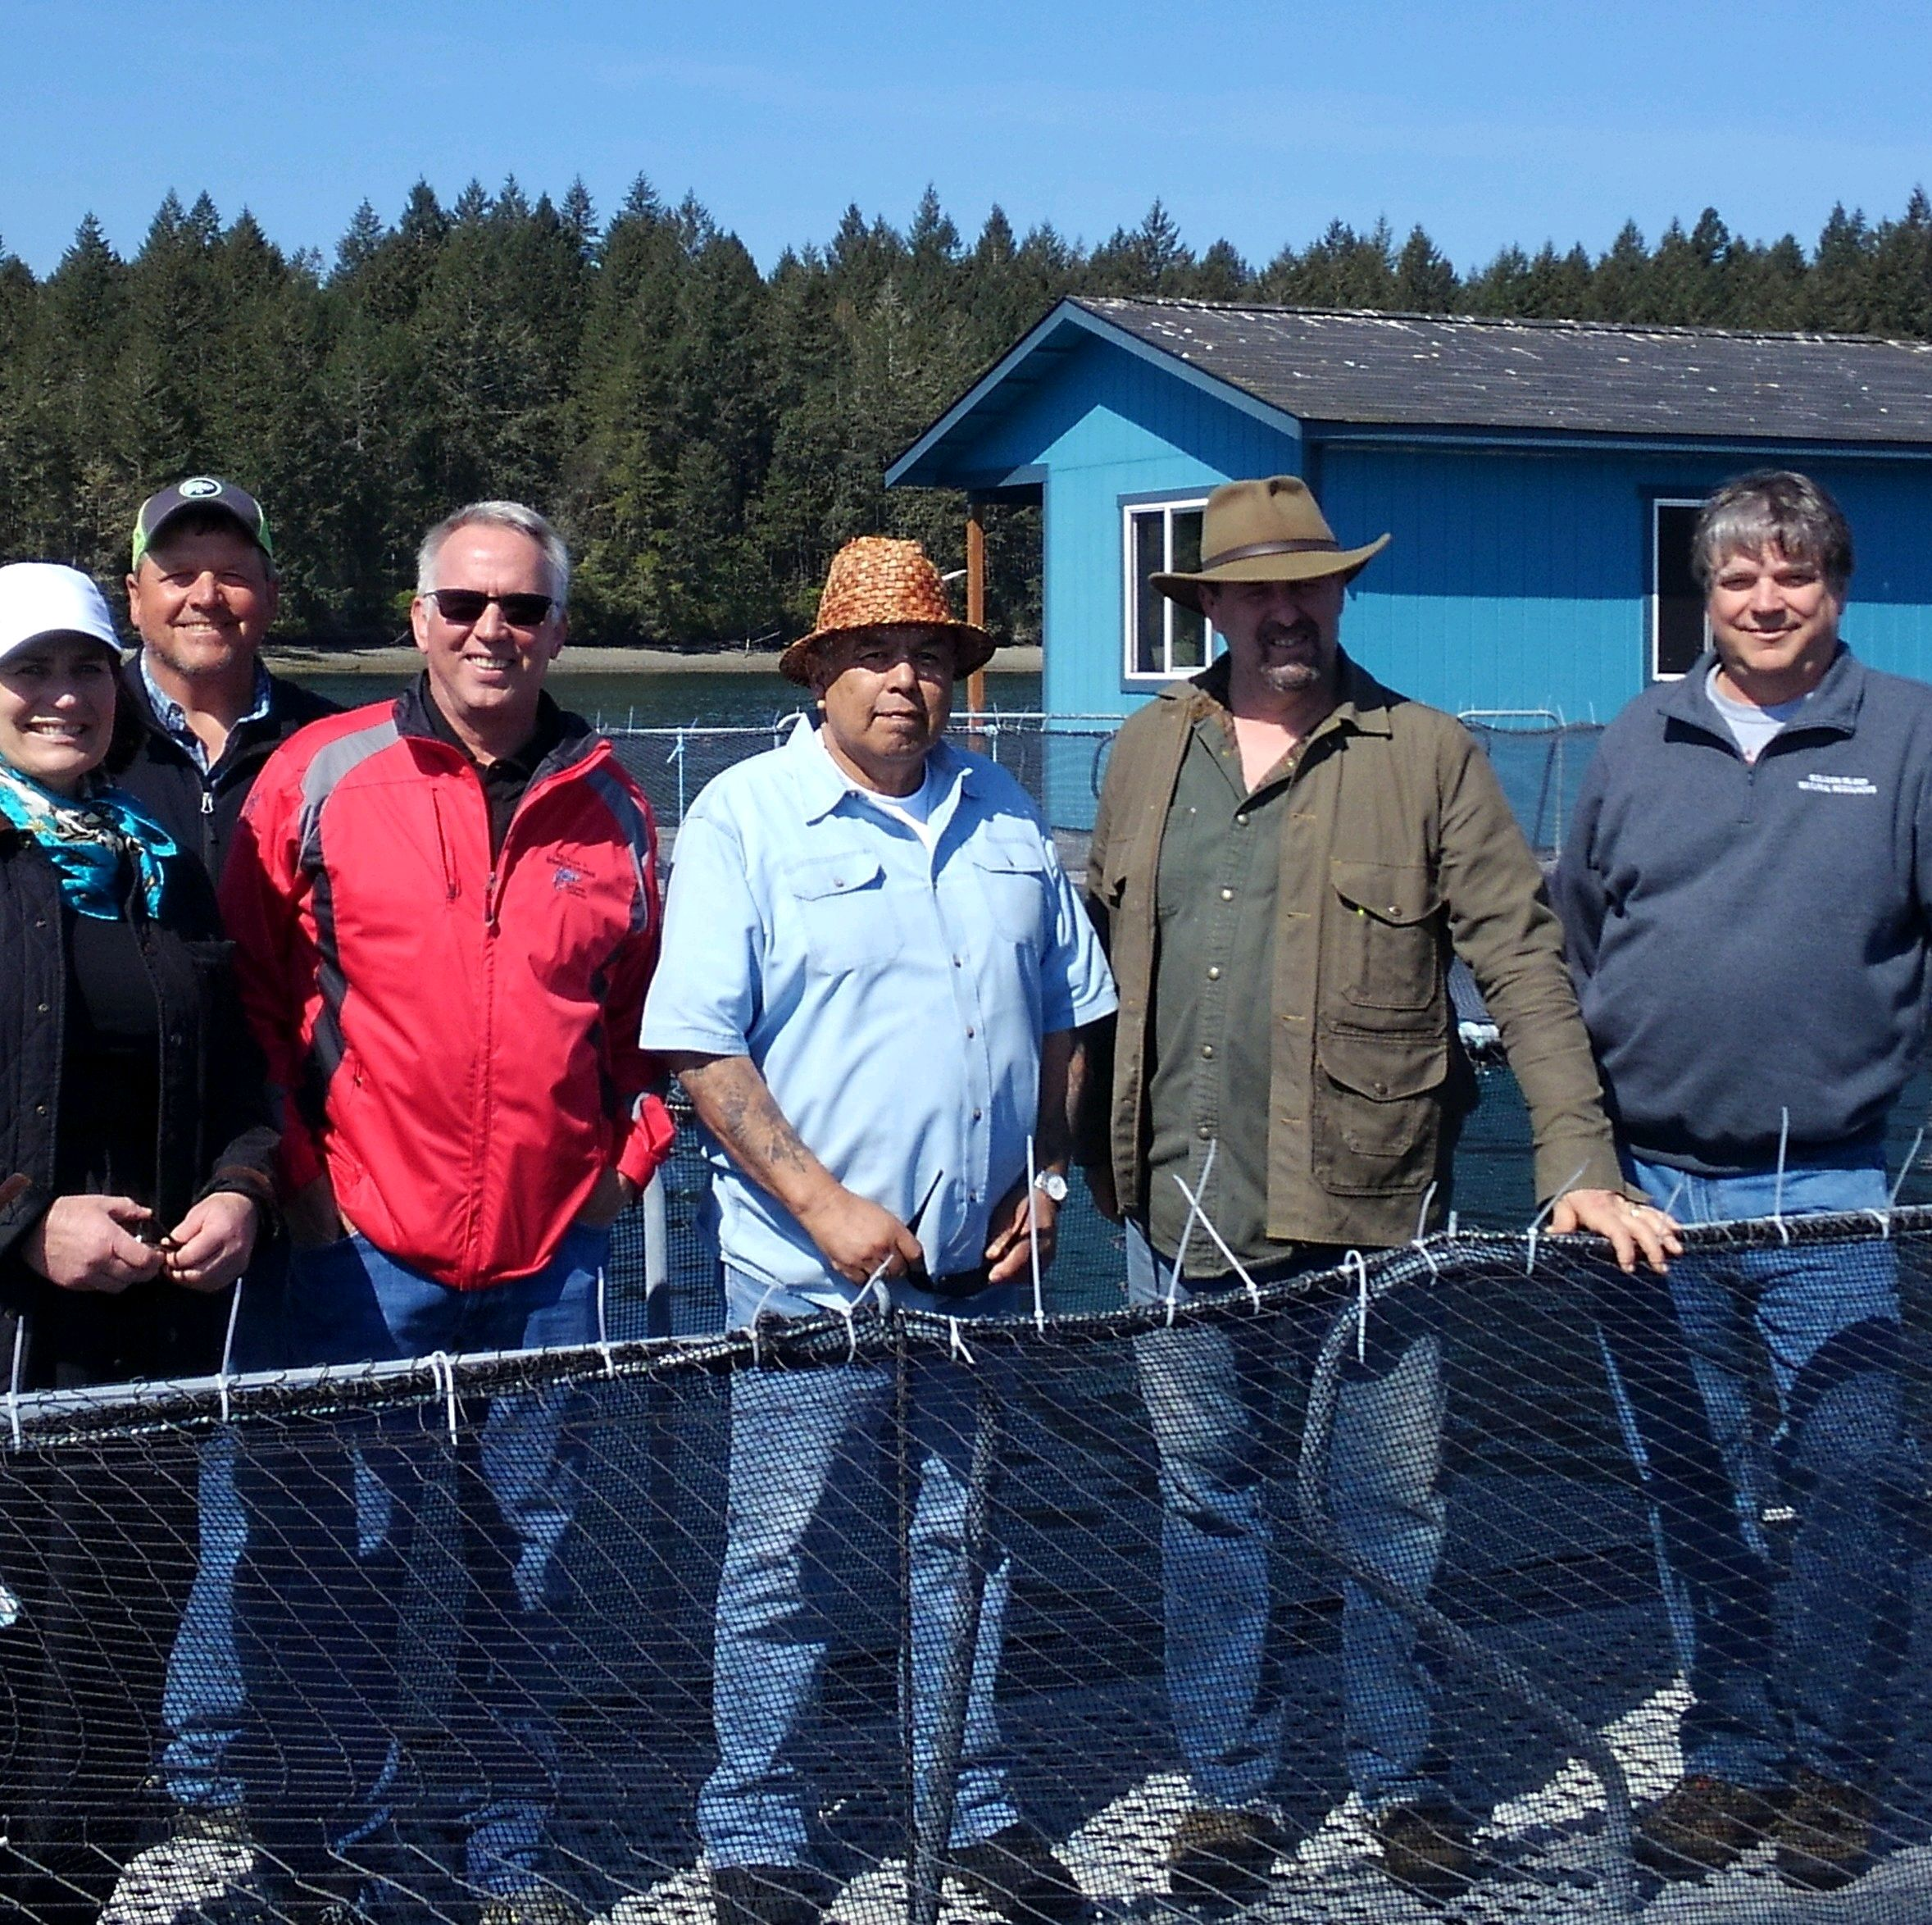 Rep. Brian Blake at the Net Pen Squaxin Island Tribe Tour on May 2, 2018.